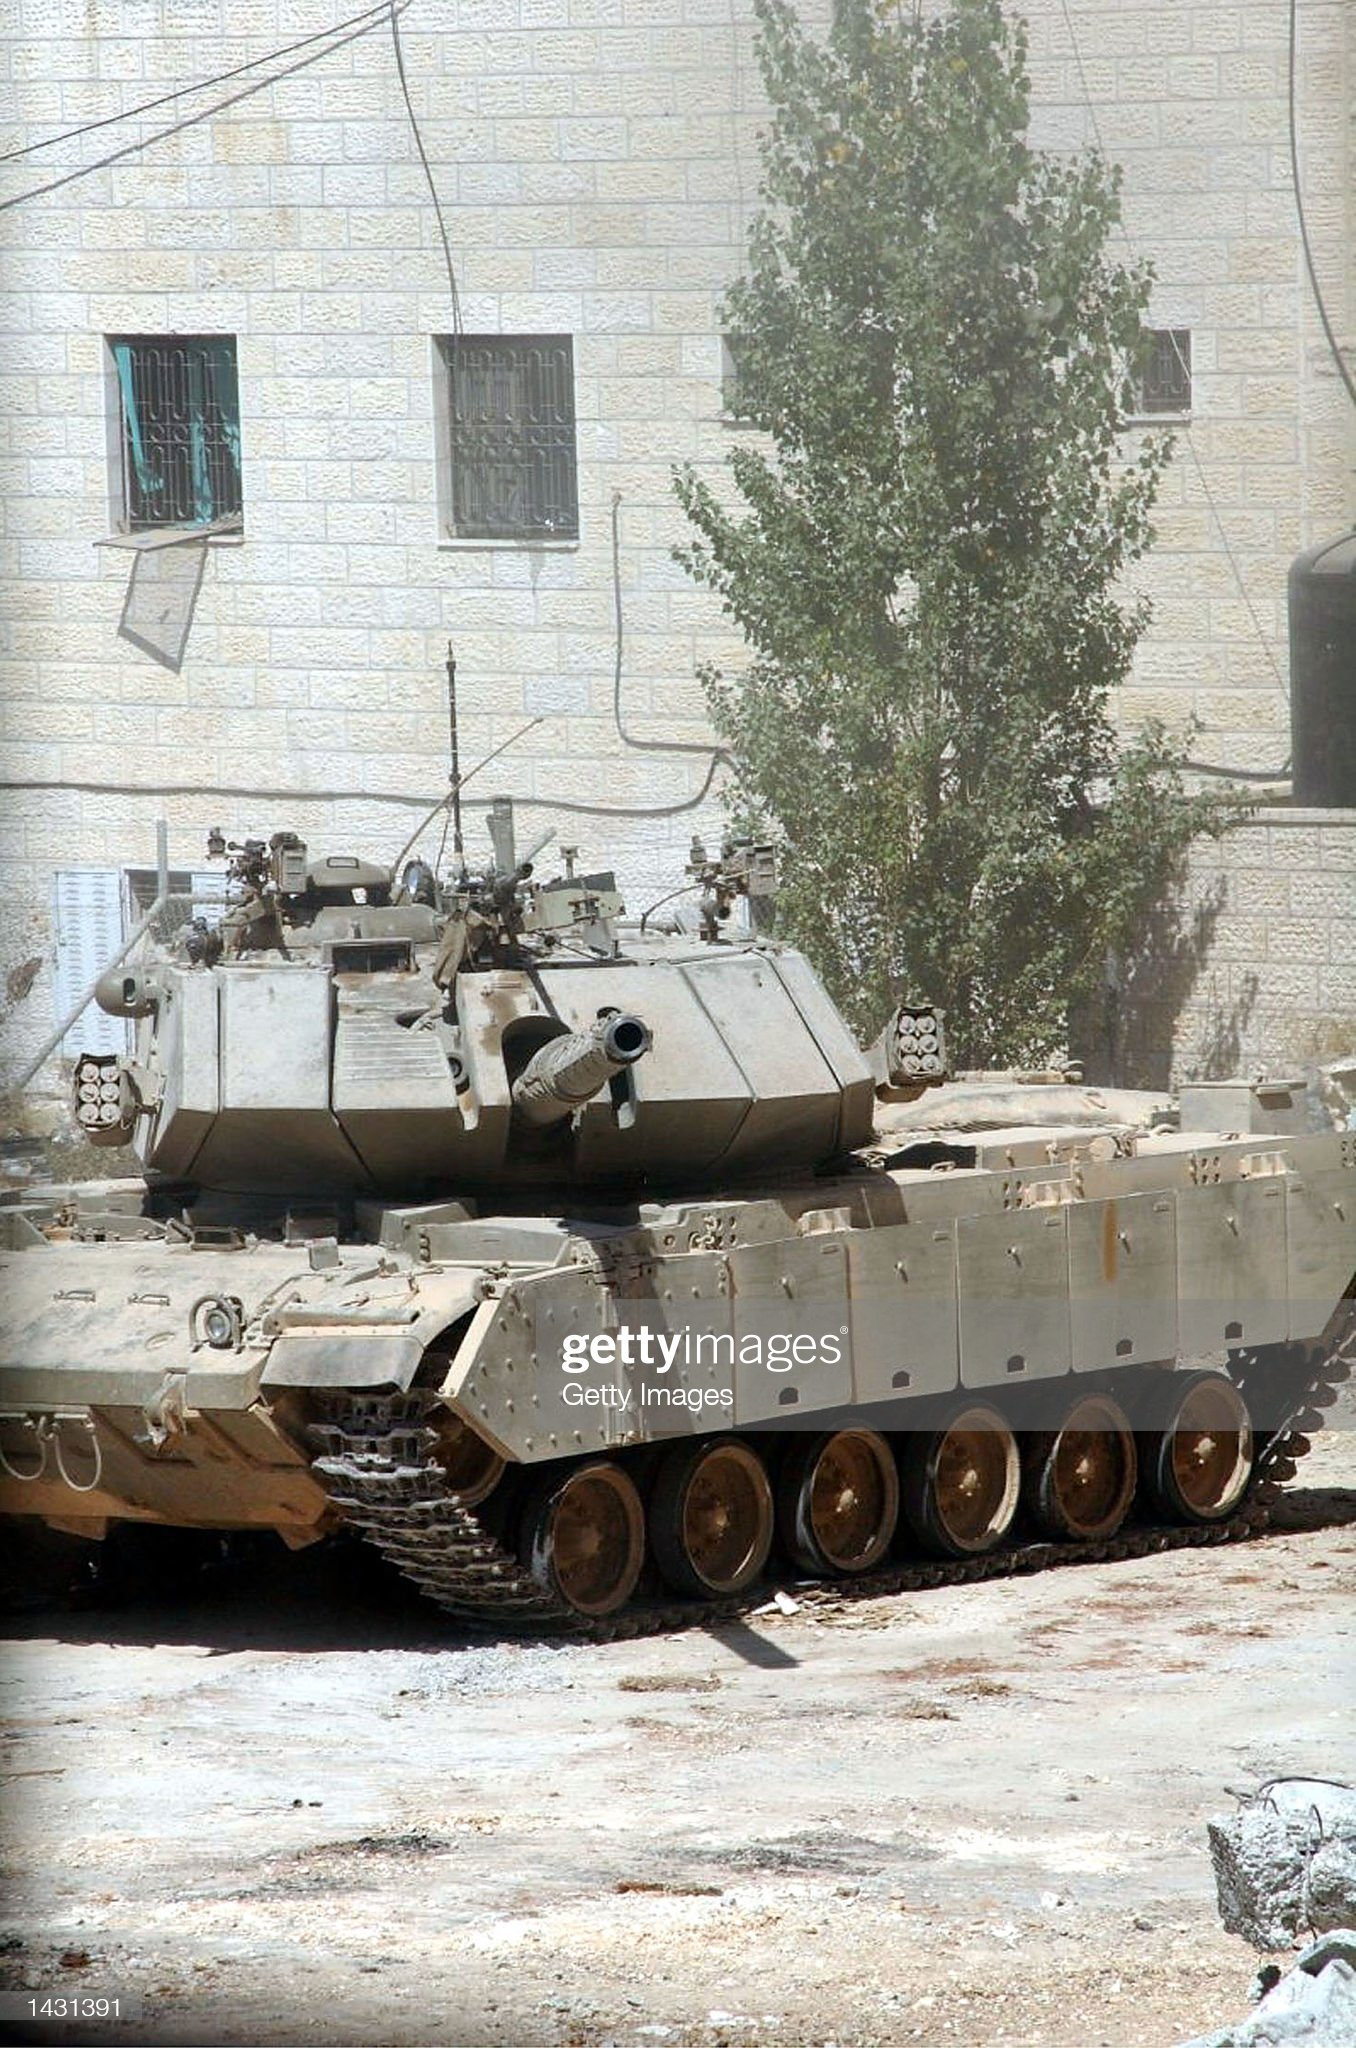 https://media.gettyimages.com/photos/an-israeli-tank-points-its-canon-at-palestinian-leader-yasser-arafats-picture-id1431391?s=2048x2048